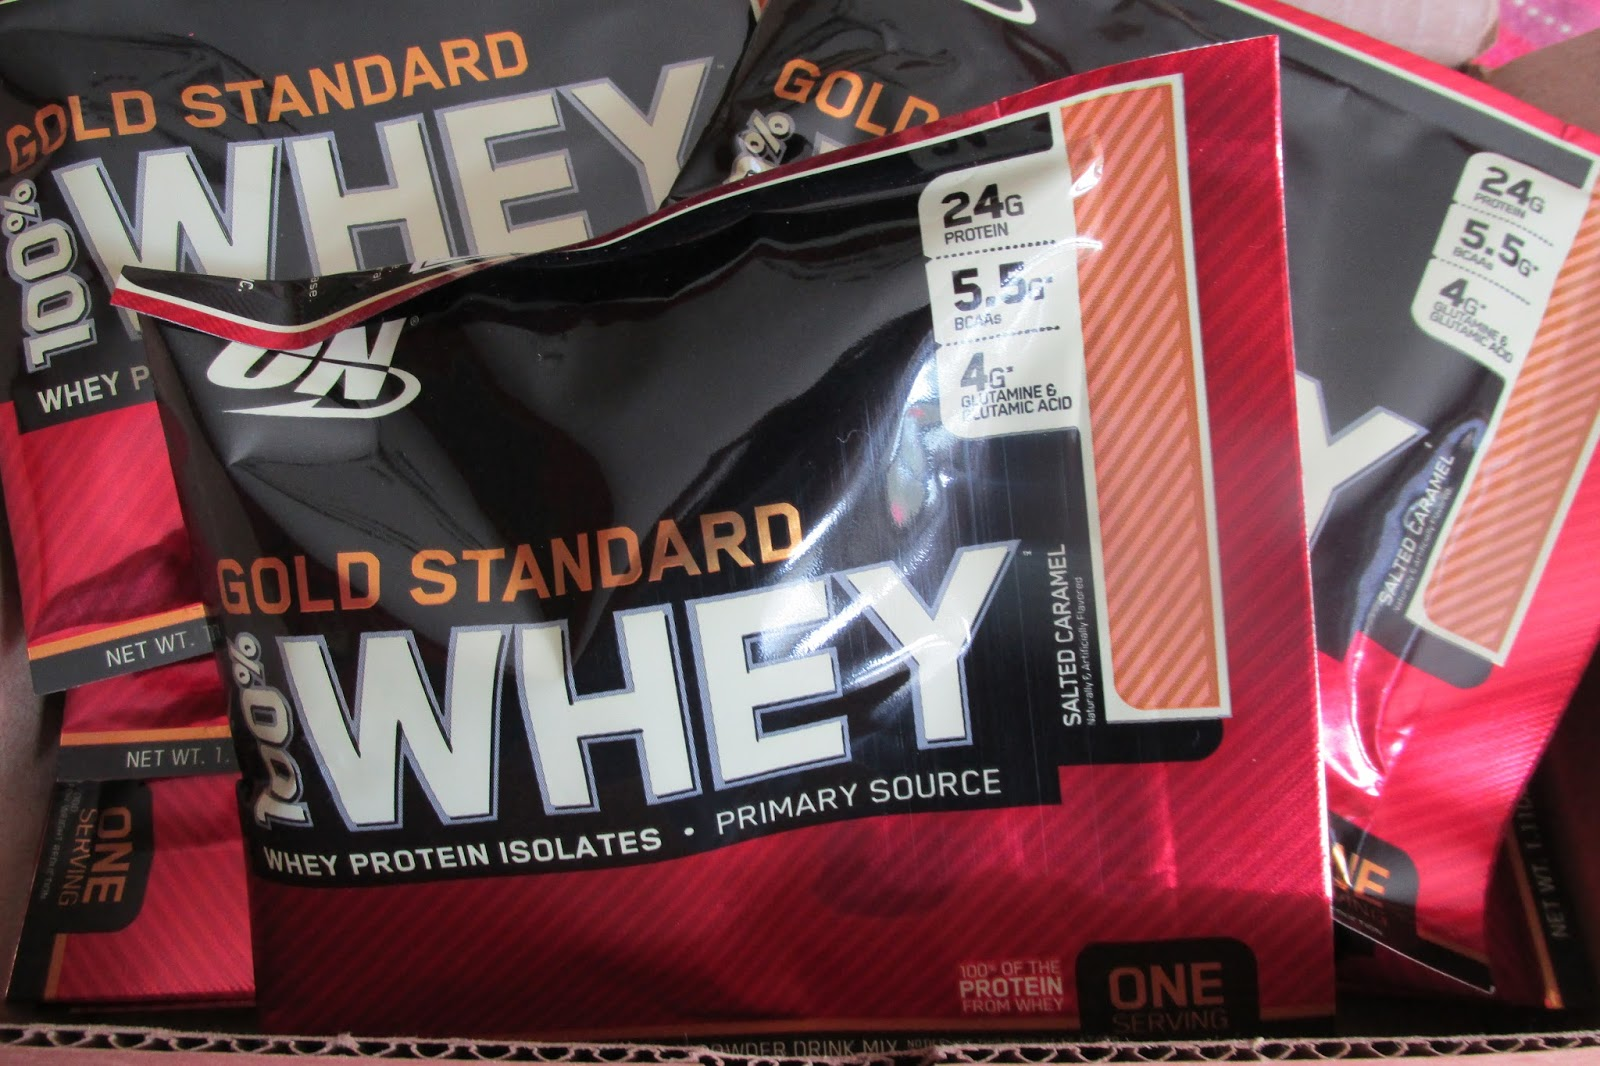 Gold Standard Whey Protein Vs Natural Whey